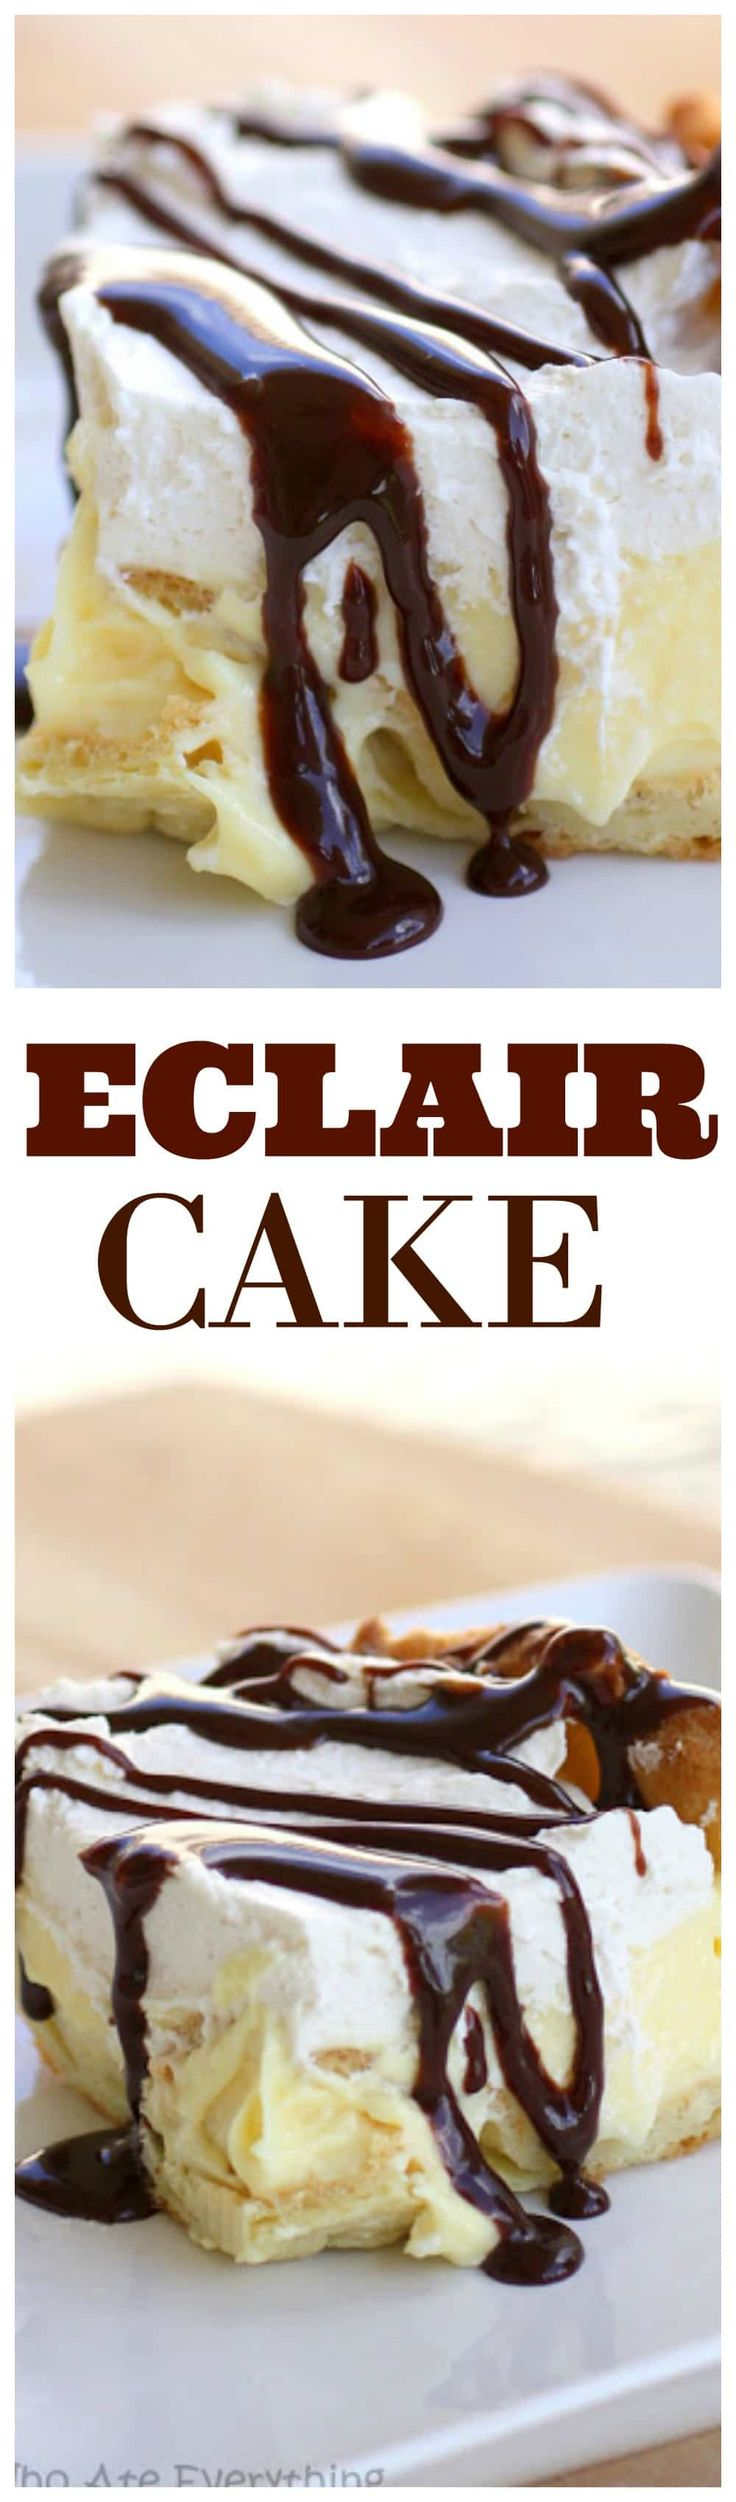 This Eclair Cake has a cream puff crust, vanilla cream cheese layer, whipped cream, and a chocolate drizzle. It's all the flavors of an eclair in cake form.